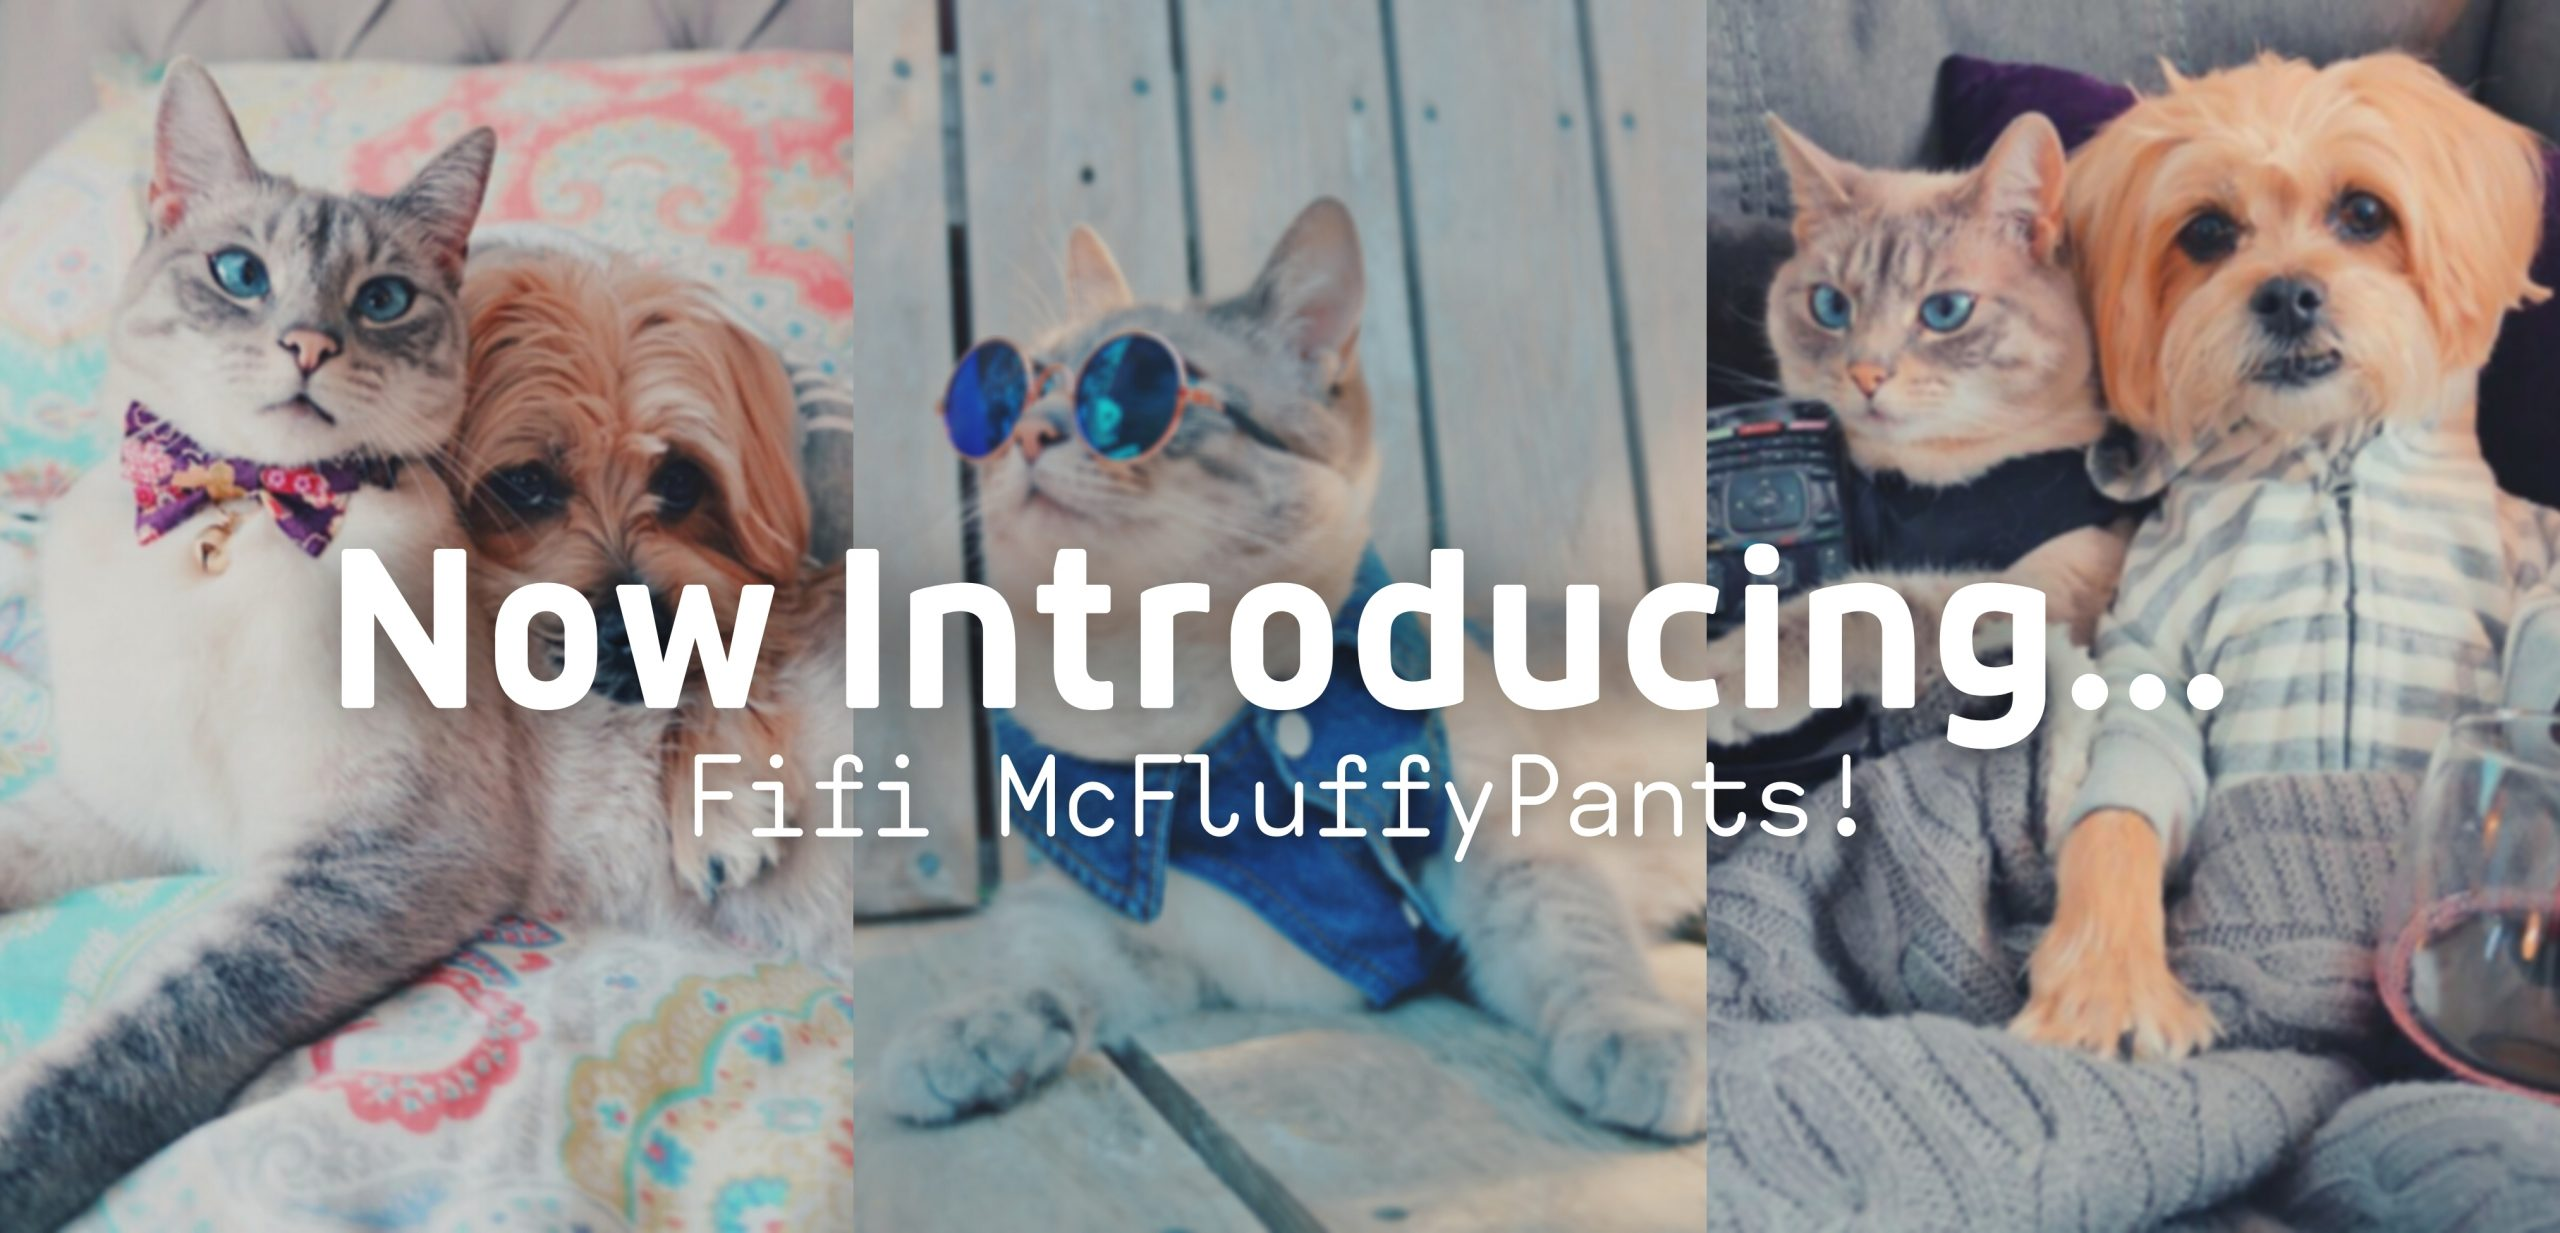 Introducing Fifi McFluffyPants!